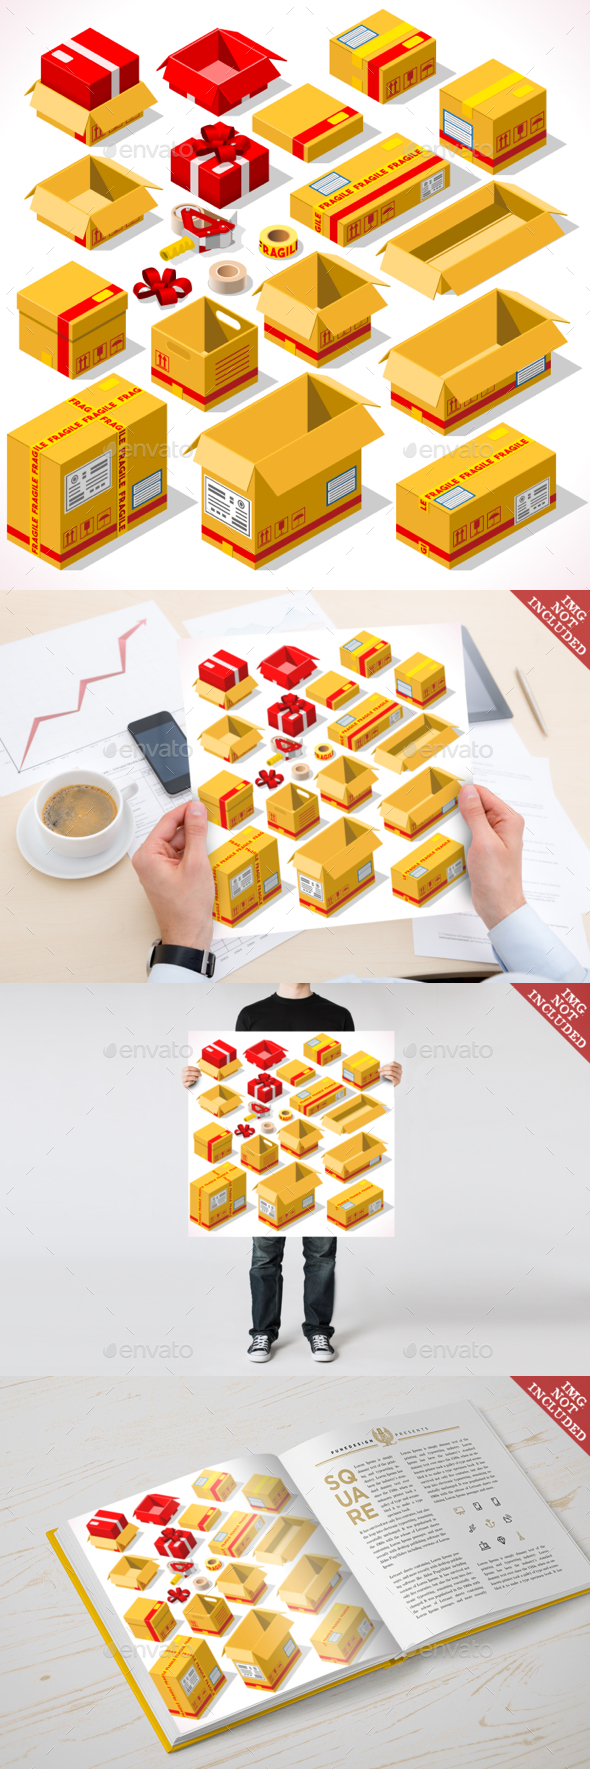 Packaging 02 Objects Isometric - Objects Vectors